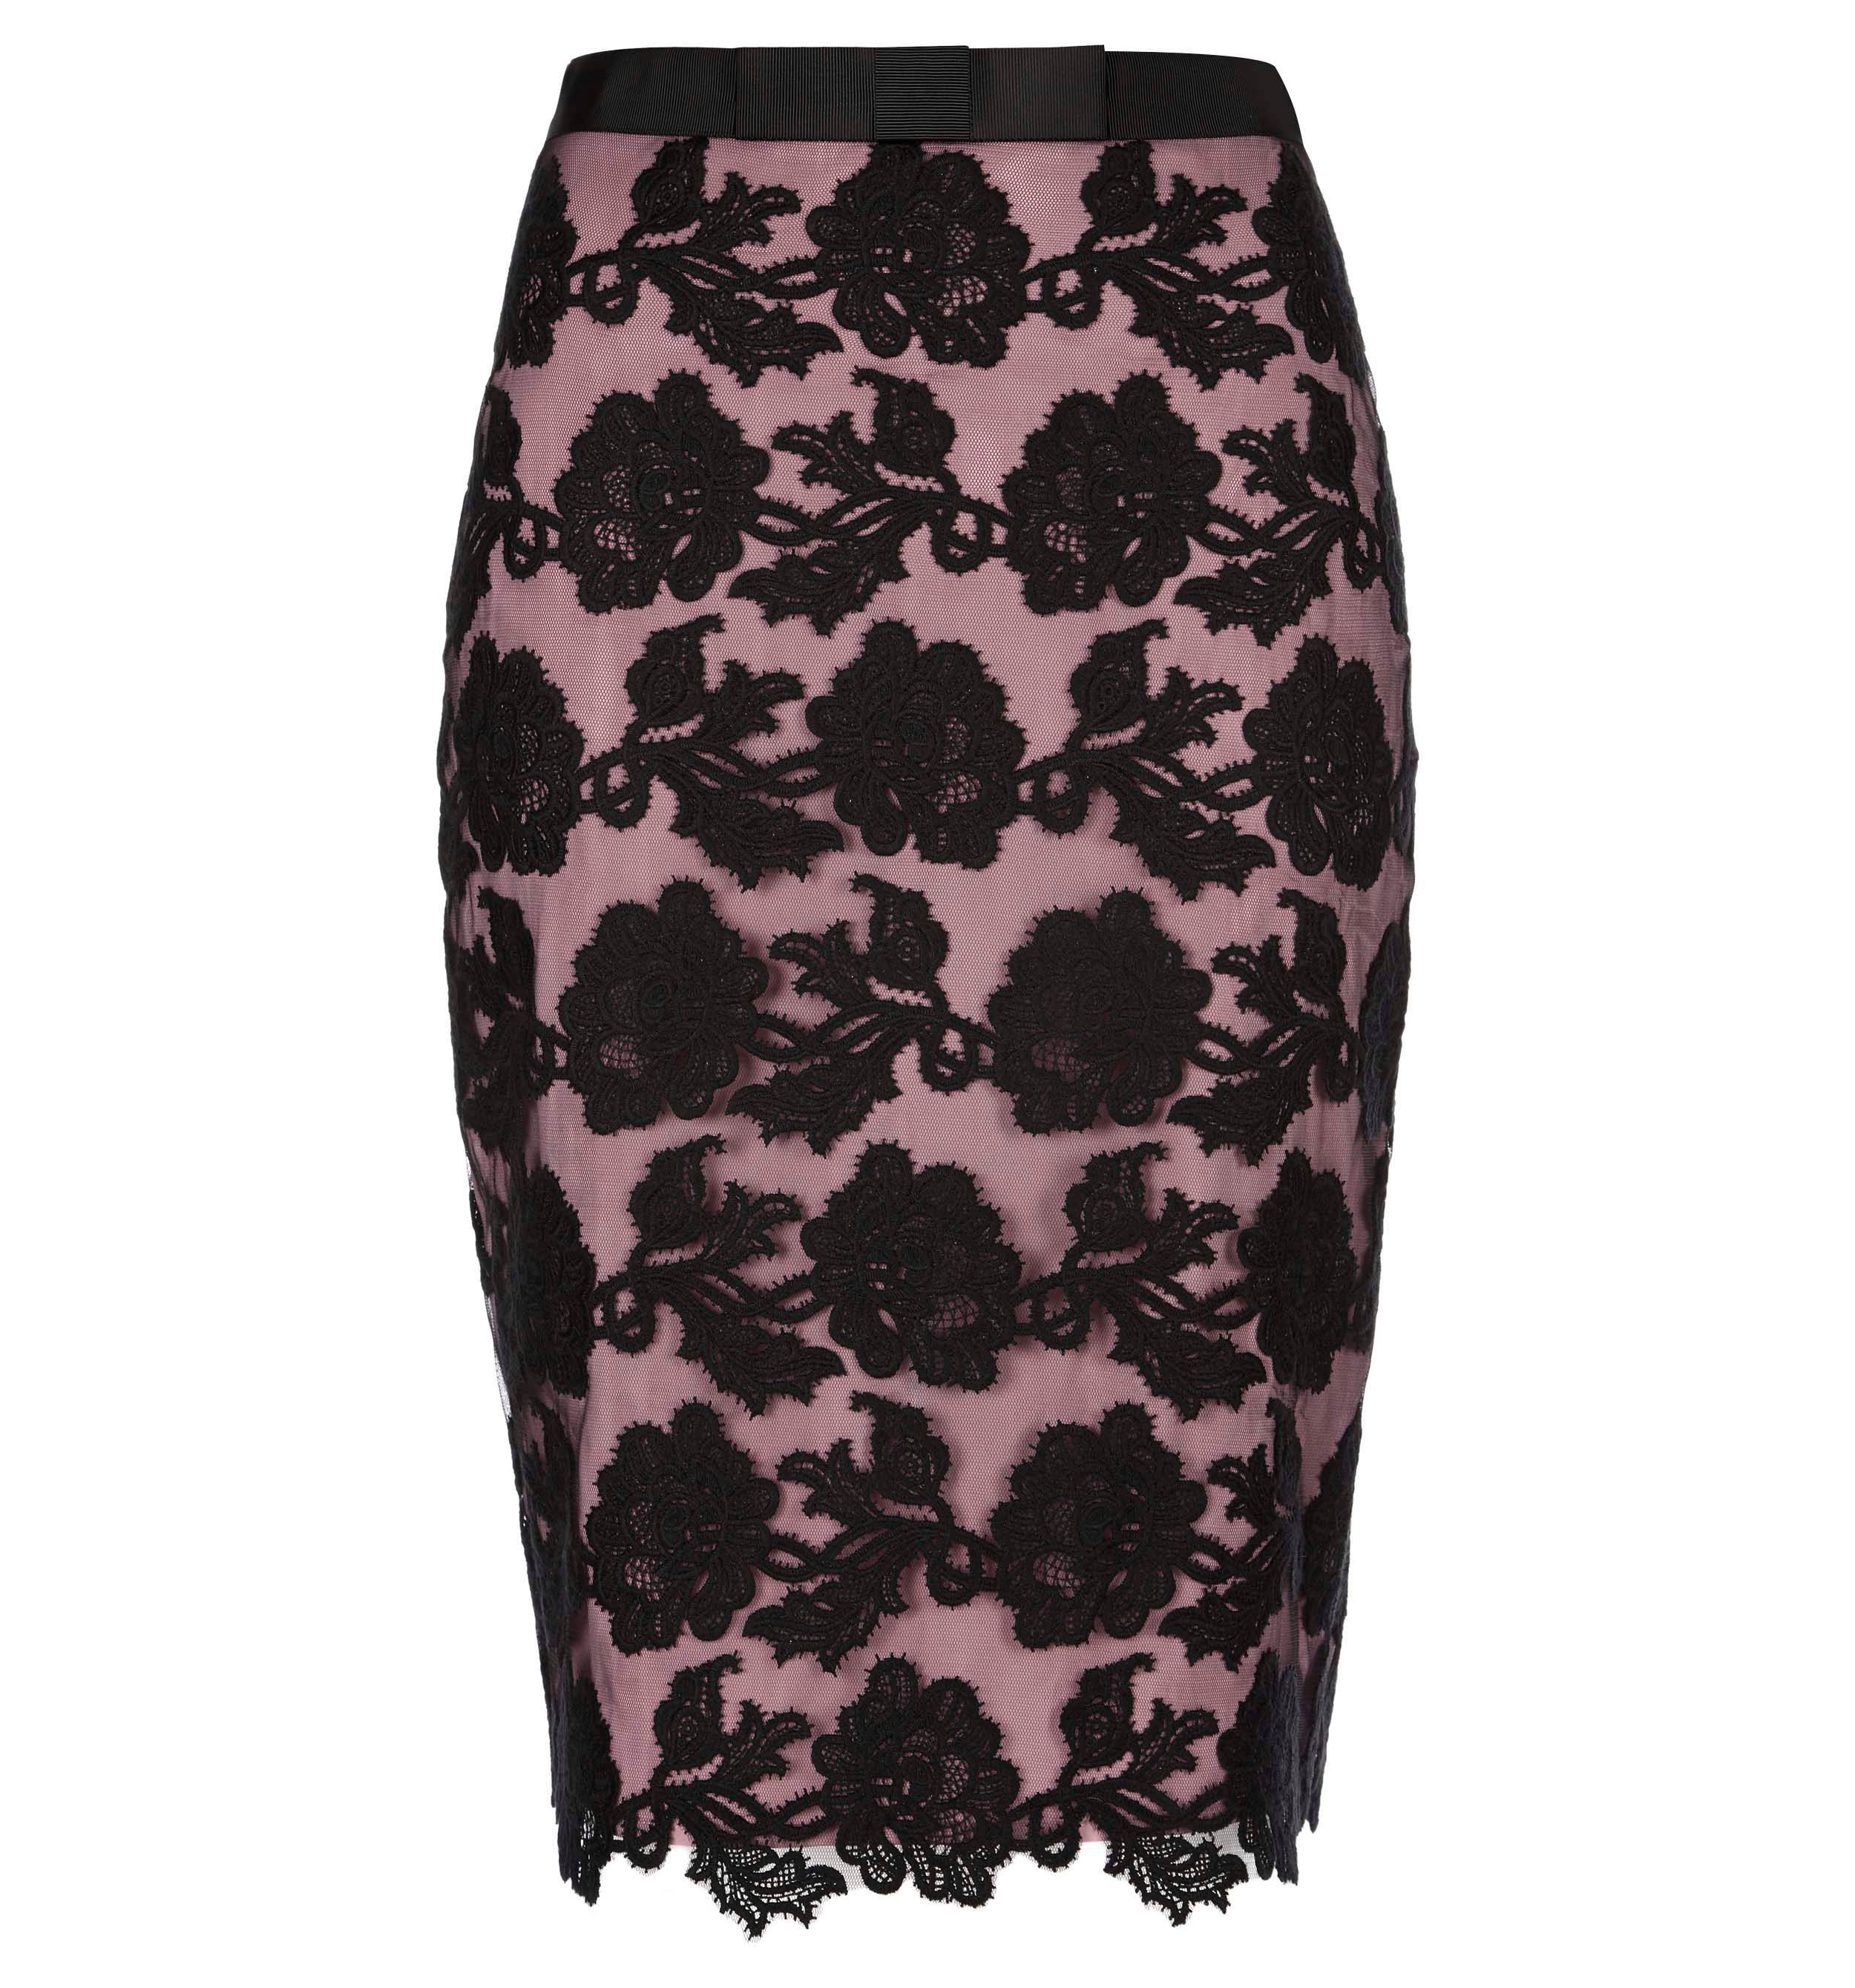 Ashworth skirt